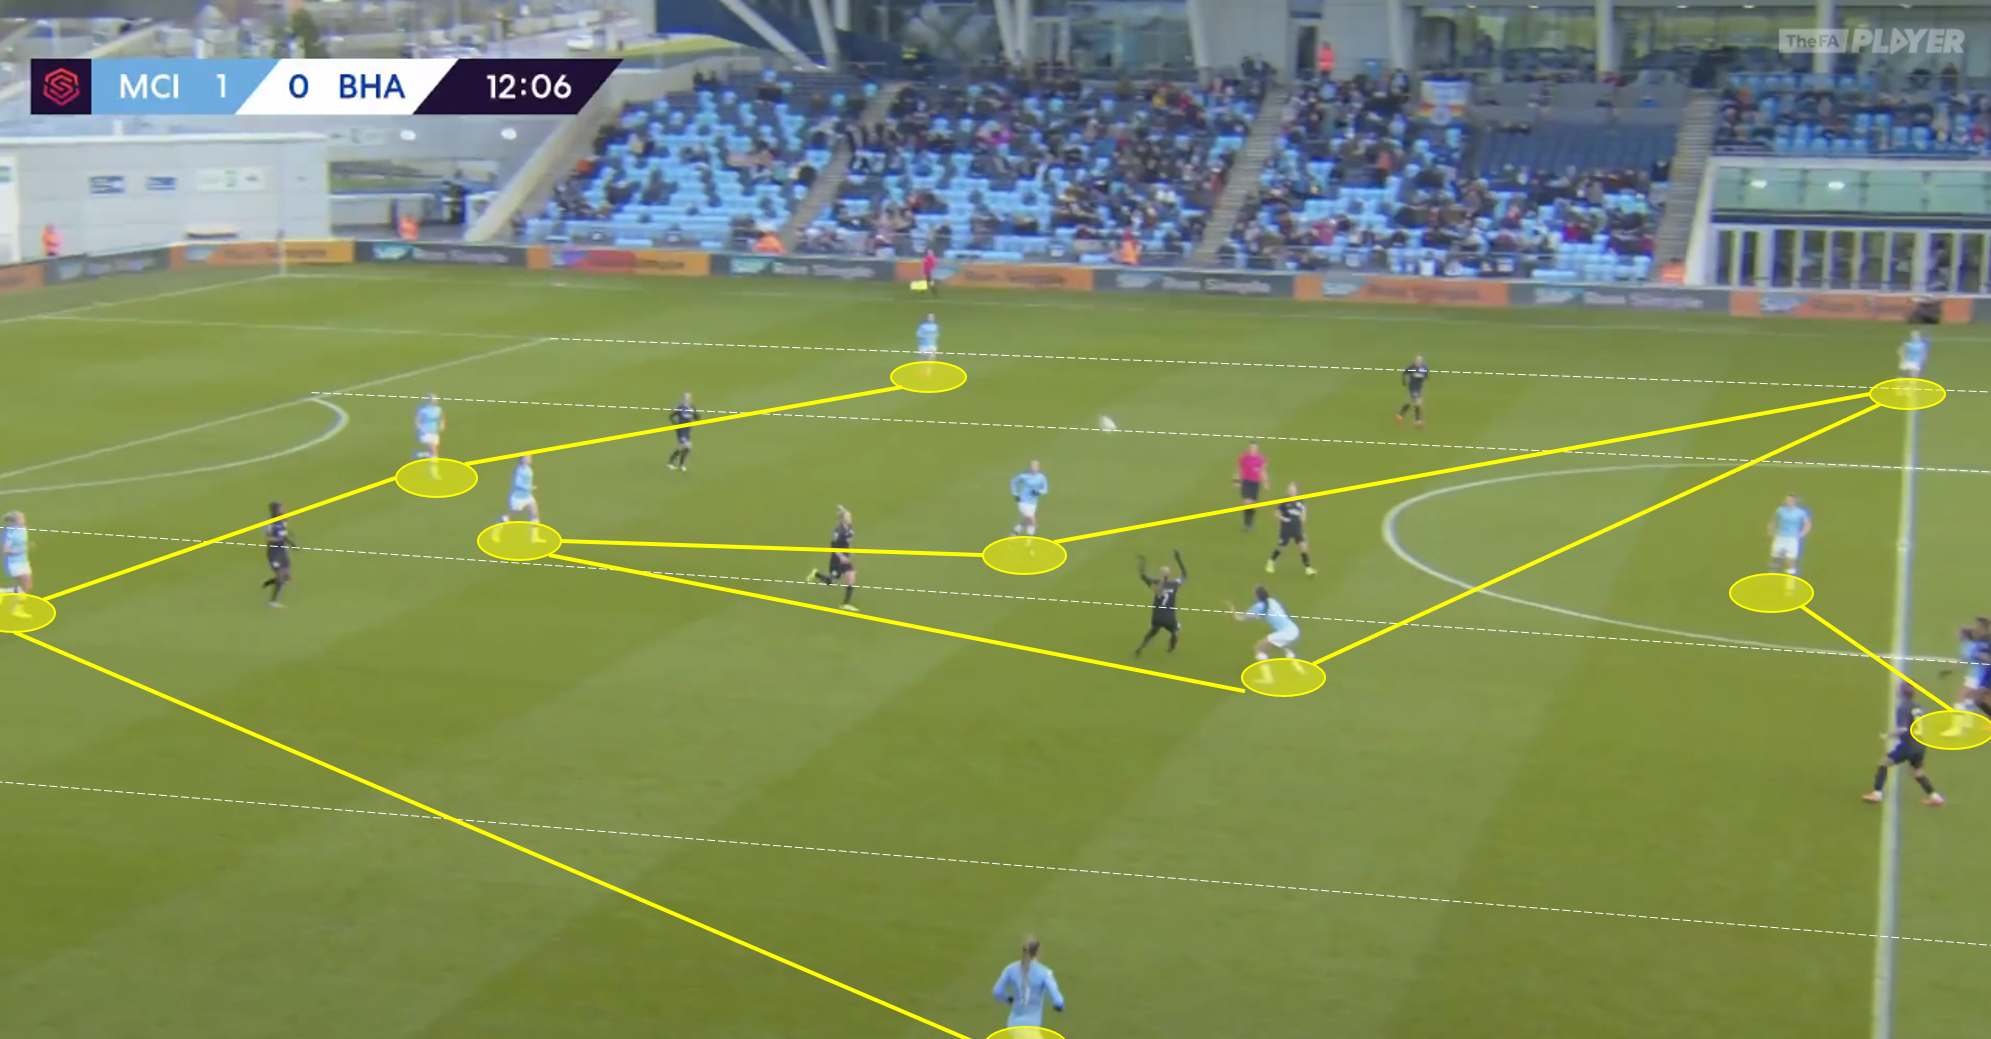 FAWSL 2019/20: Manchester City Women vs Brighton and Hove Albion Women - Tactical Analysis tactics